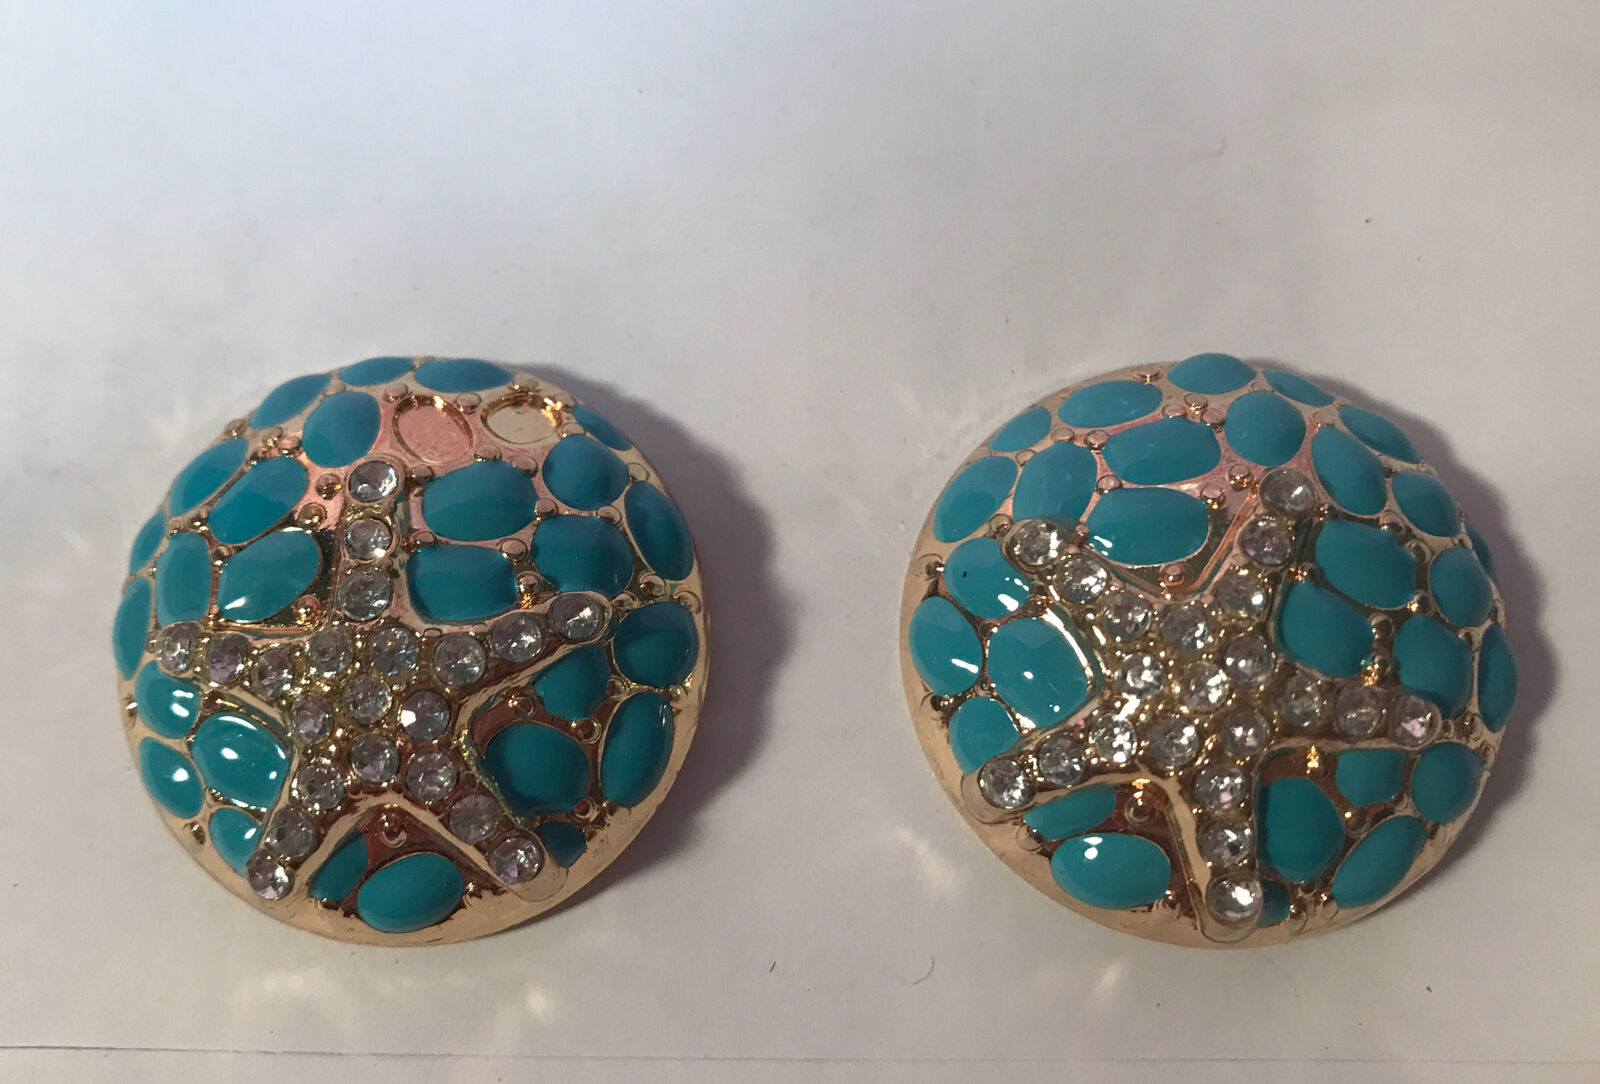 Lindsay Philips Interchangeable Shoe Snaps Decorative Charms GOLD/BLUE STARFISH